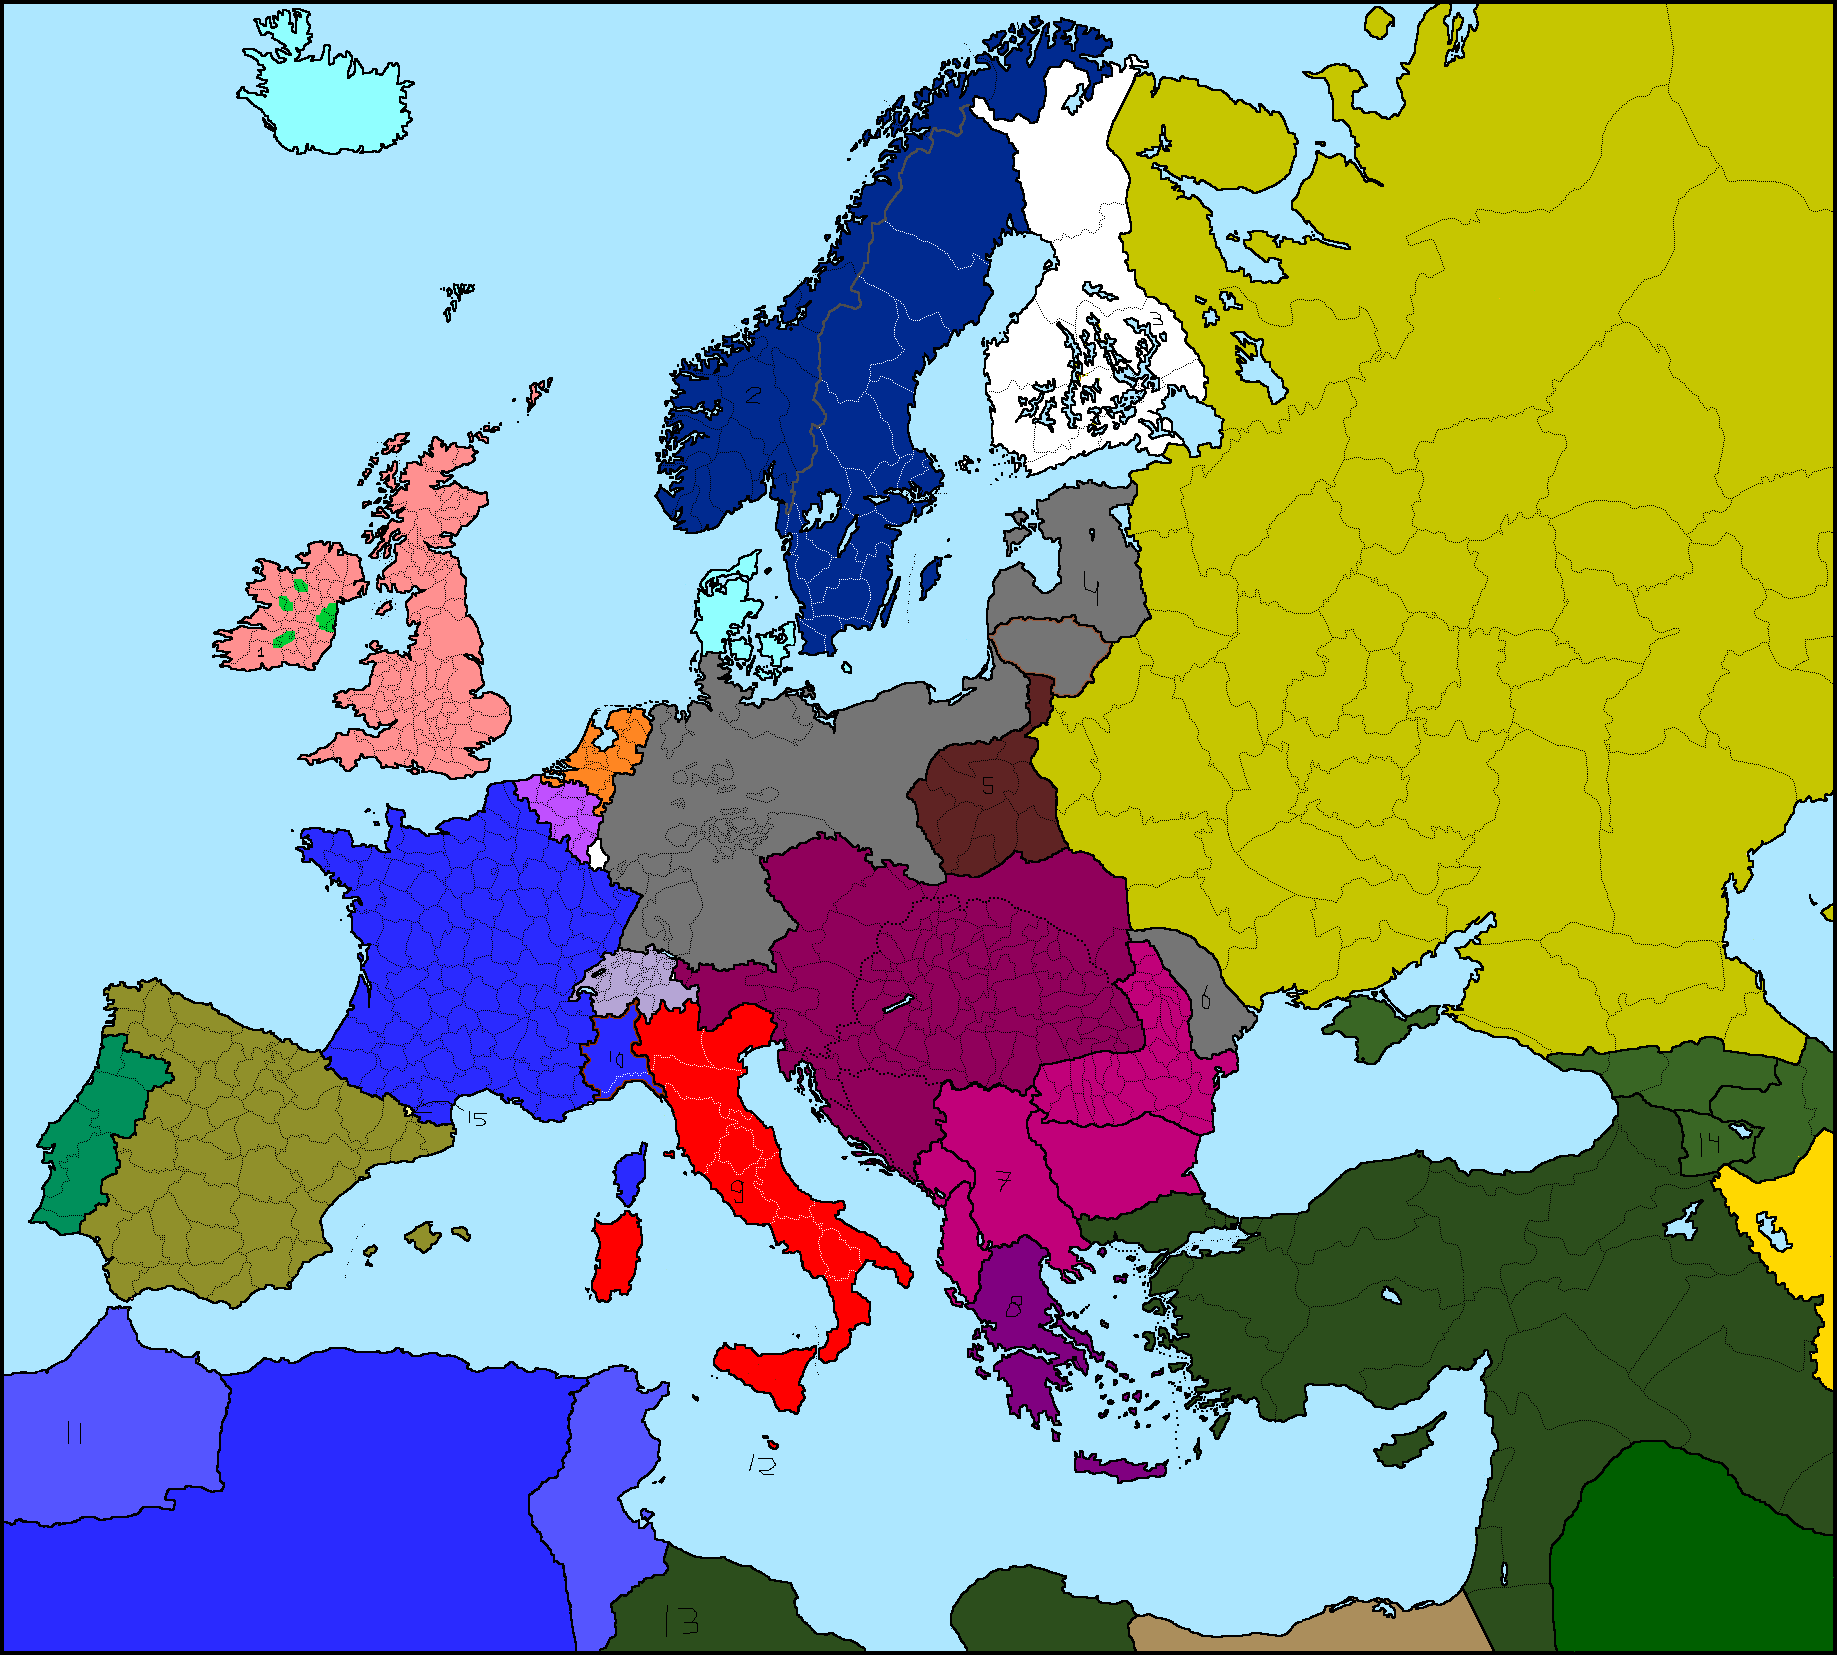 Europe 1915 France Germanywithnumbers.PNG